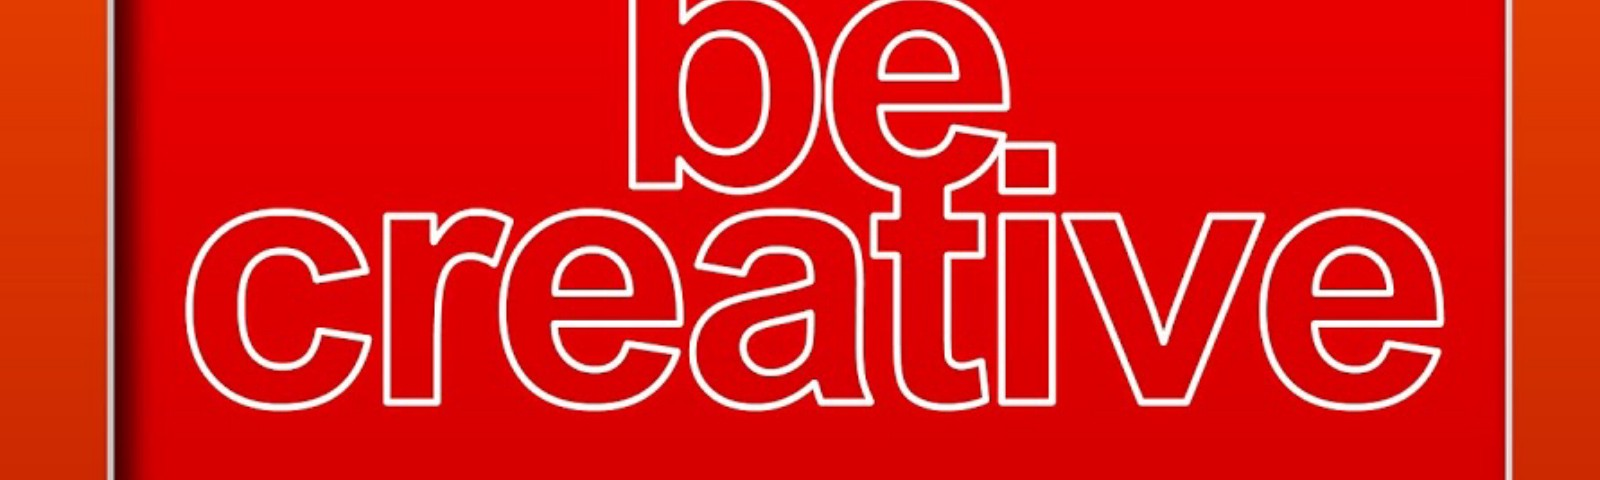 red background with silhouette woman standing horizontally pointing at caption 'be creative'